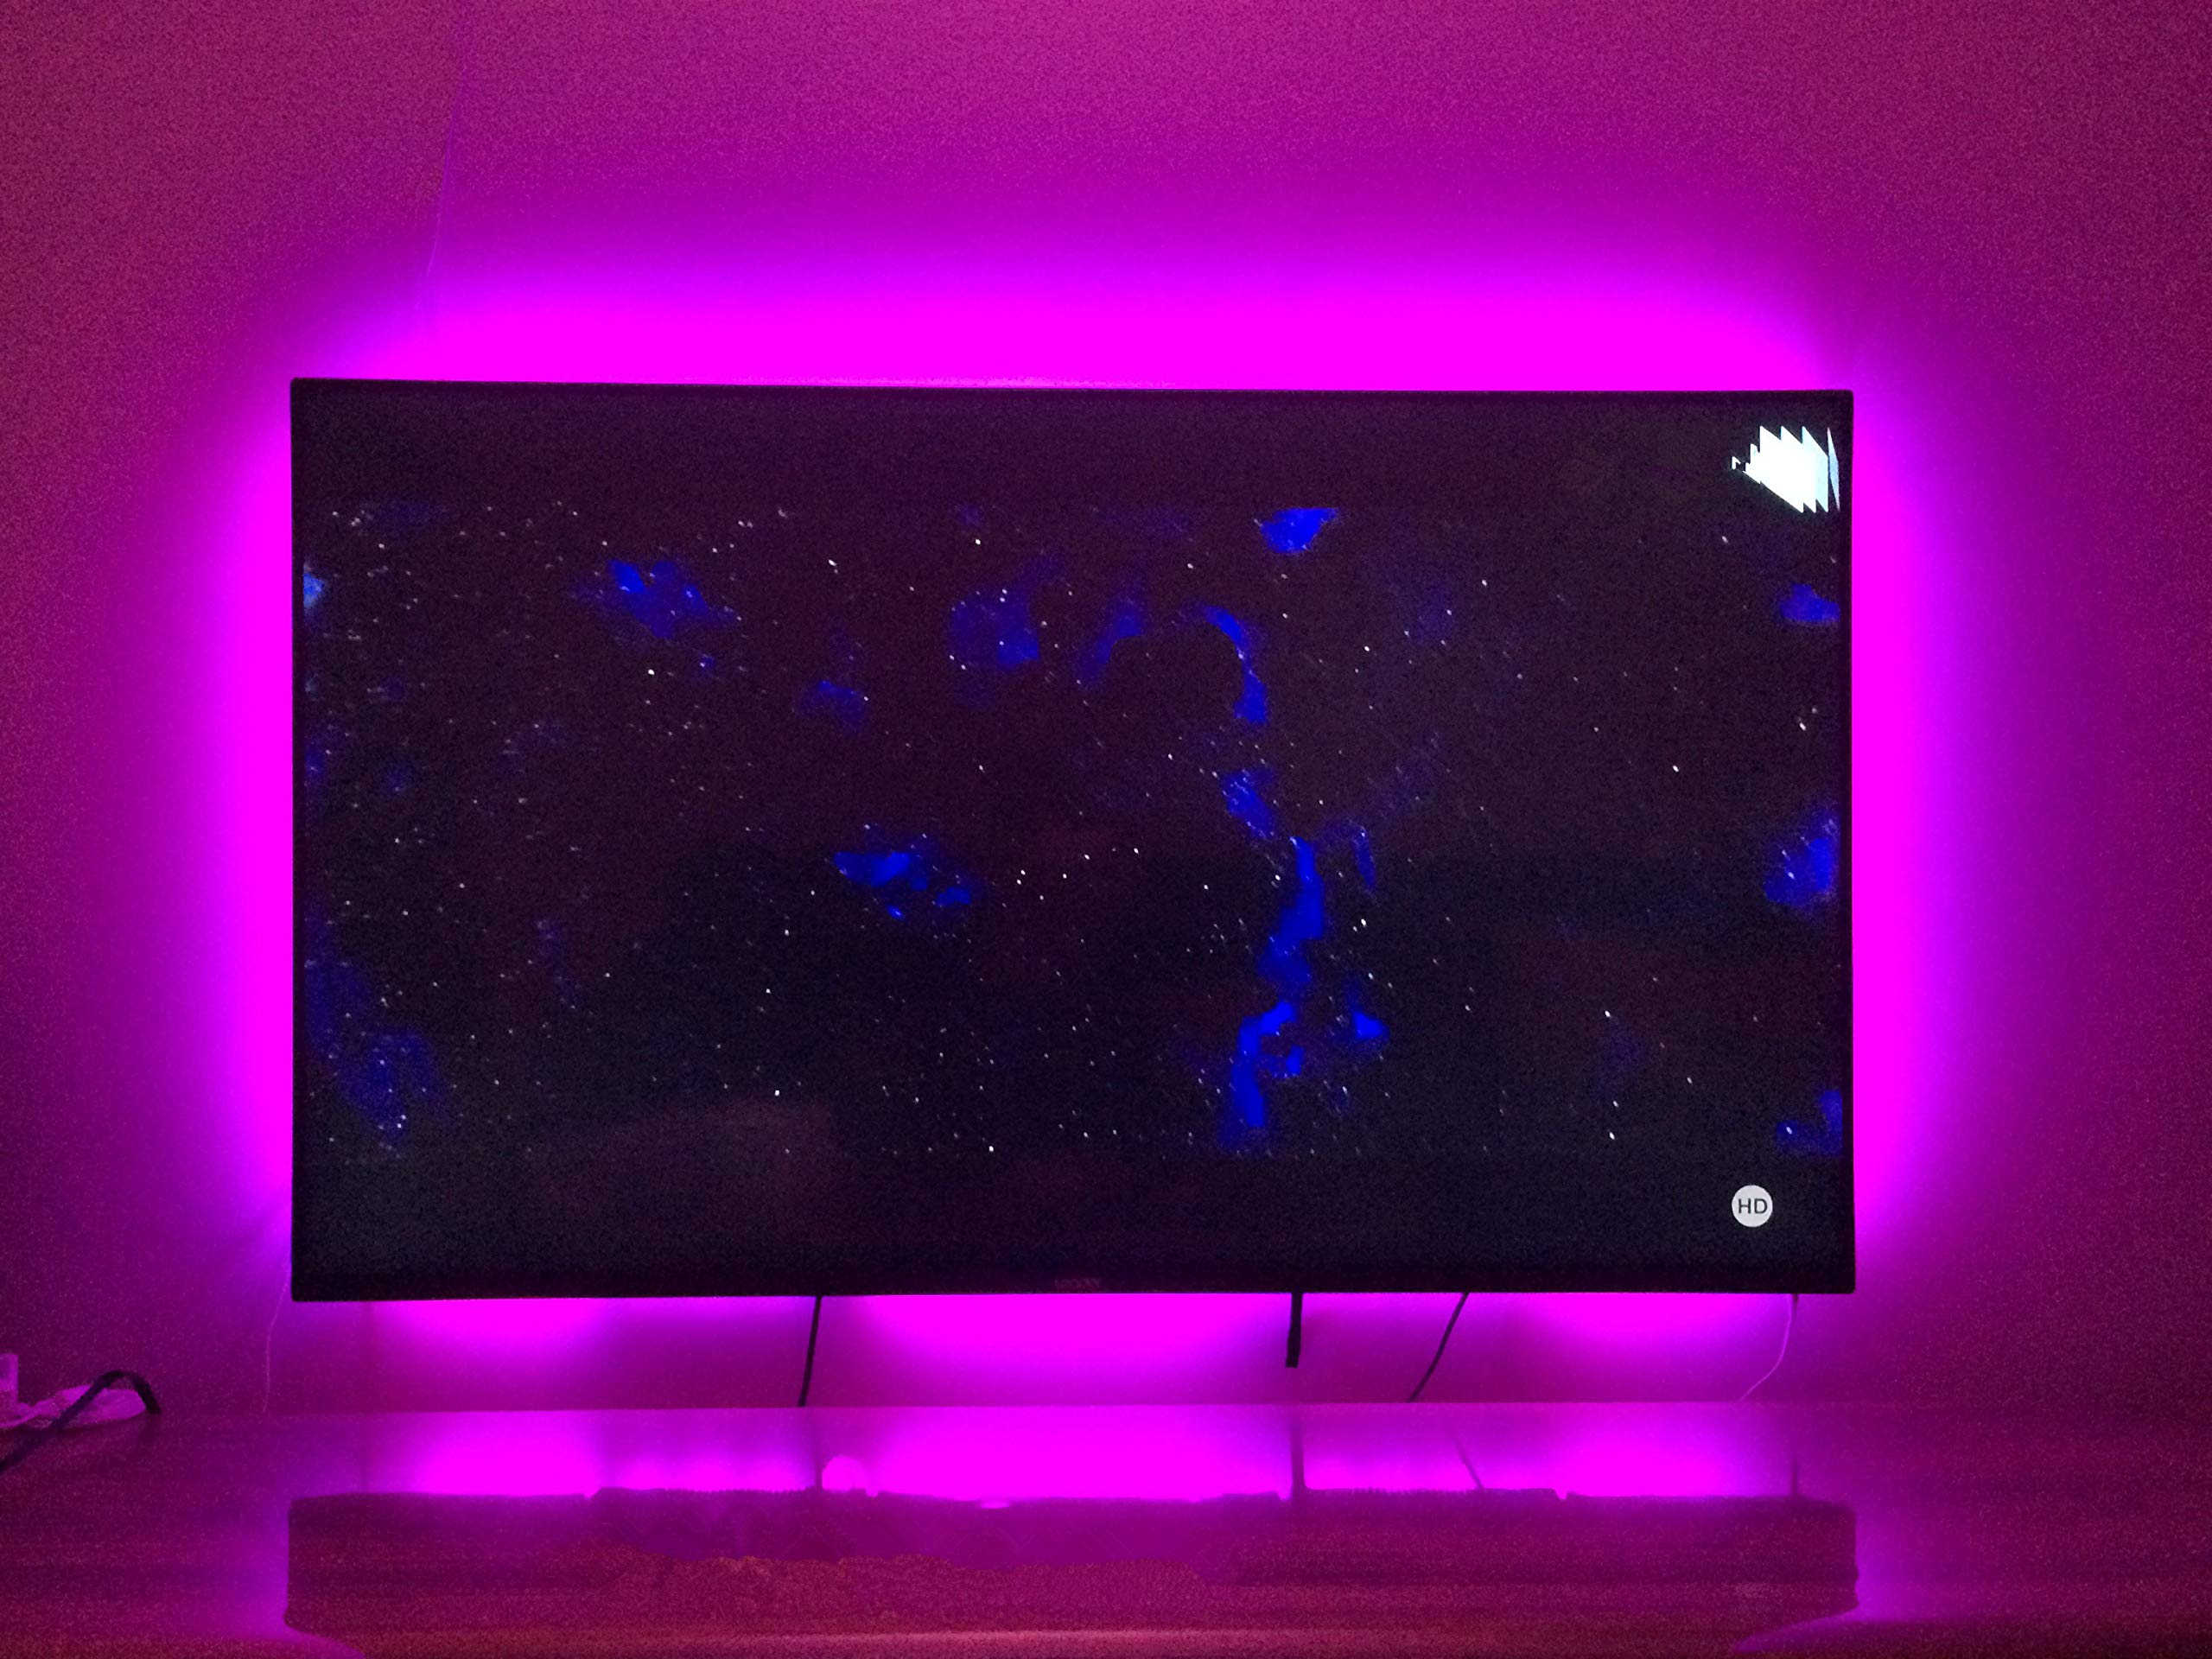 TV Bias Lighting USB Powered LED Strip Lights for 65 70 inches HDTV 4M/13.12ft Black Light Strip Kit Decor for TV with 20 Color Options Remote (Black 65'' - 70'')